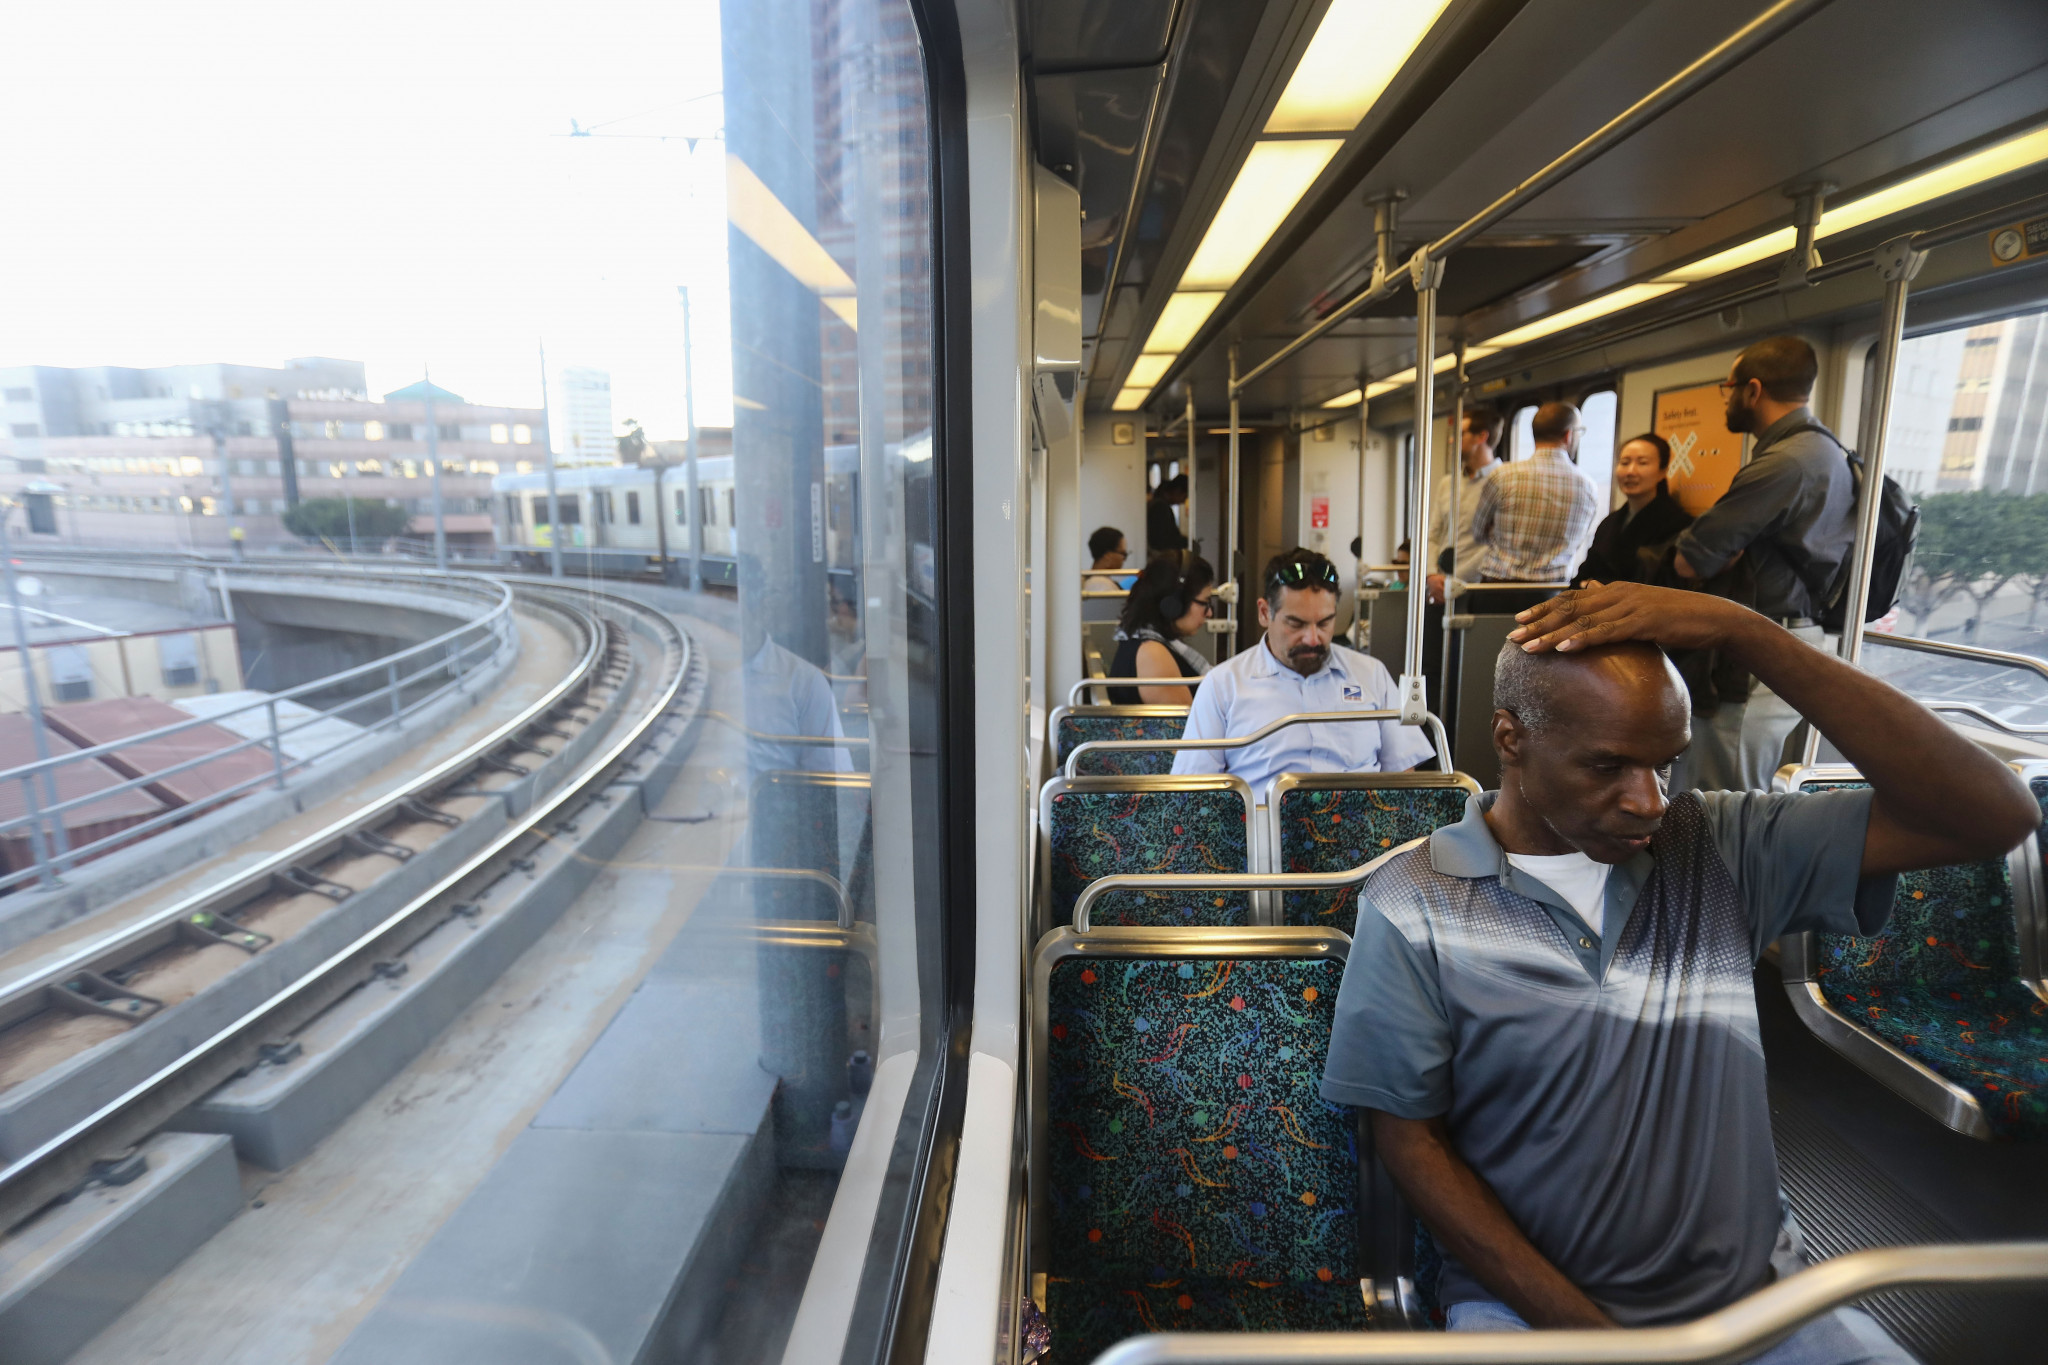 Los Angeles Metro hopes for private sector rail deals before 2028 Olympics